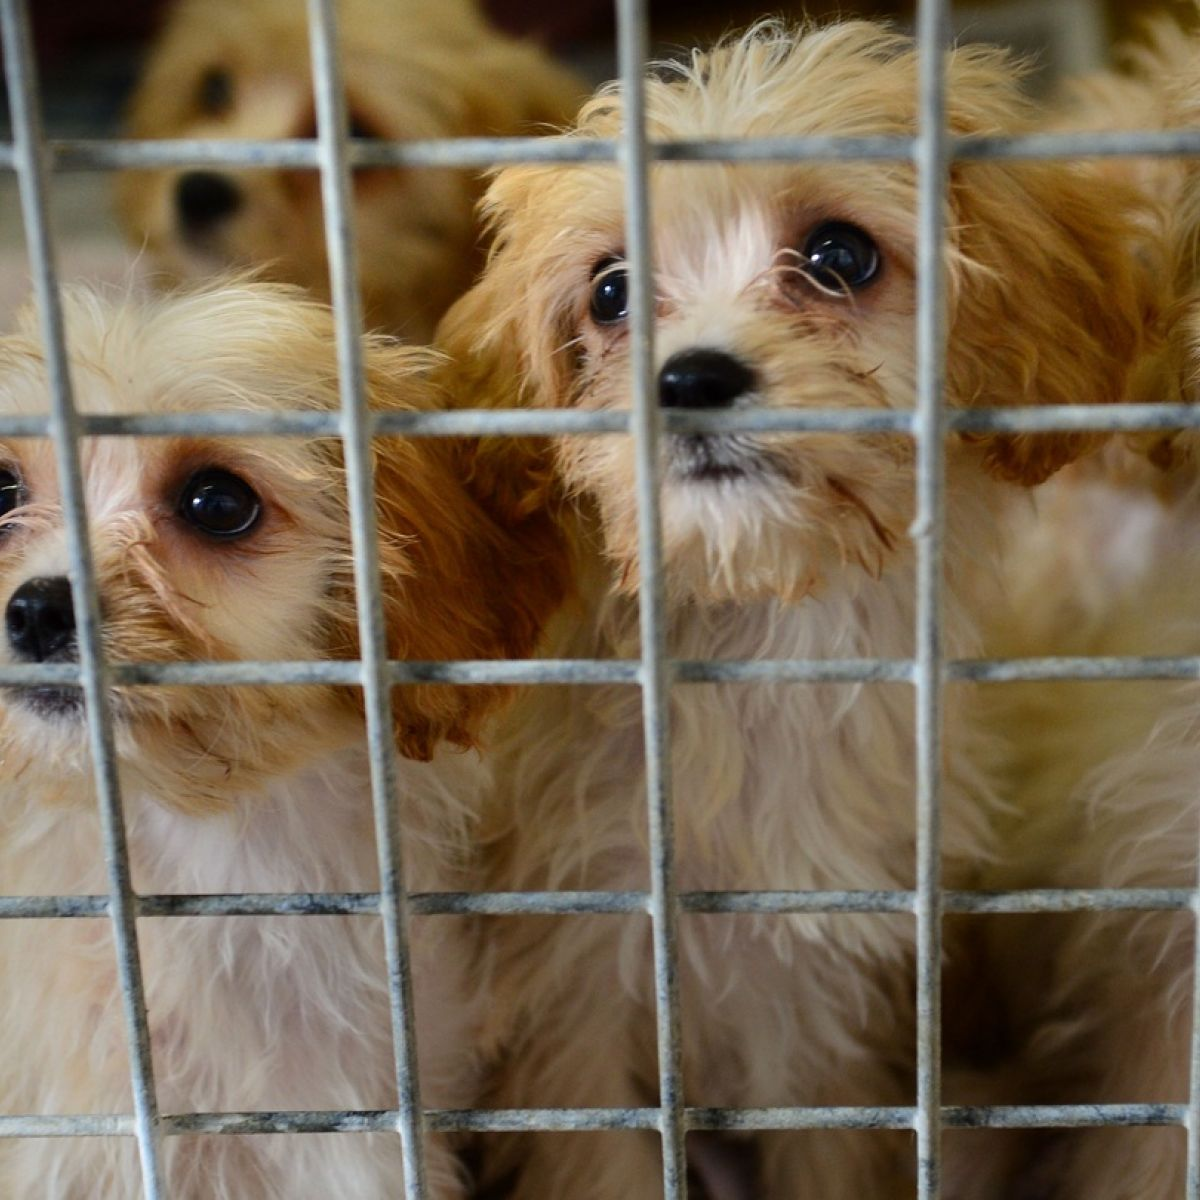 New rules aim to combat Ireland's reputation as puppy farm